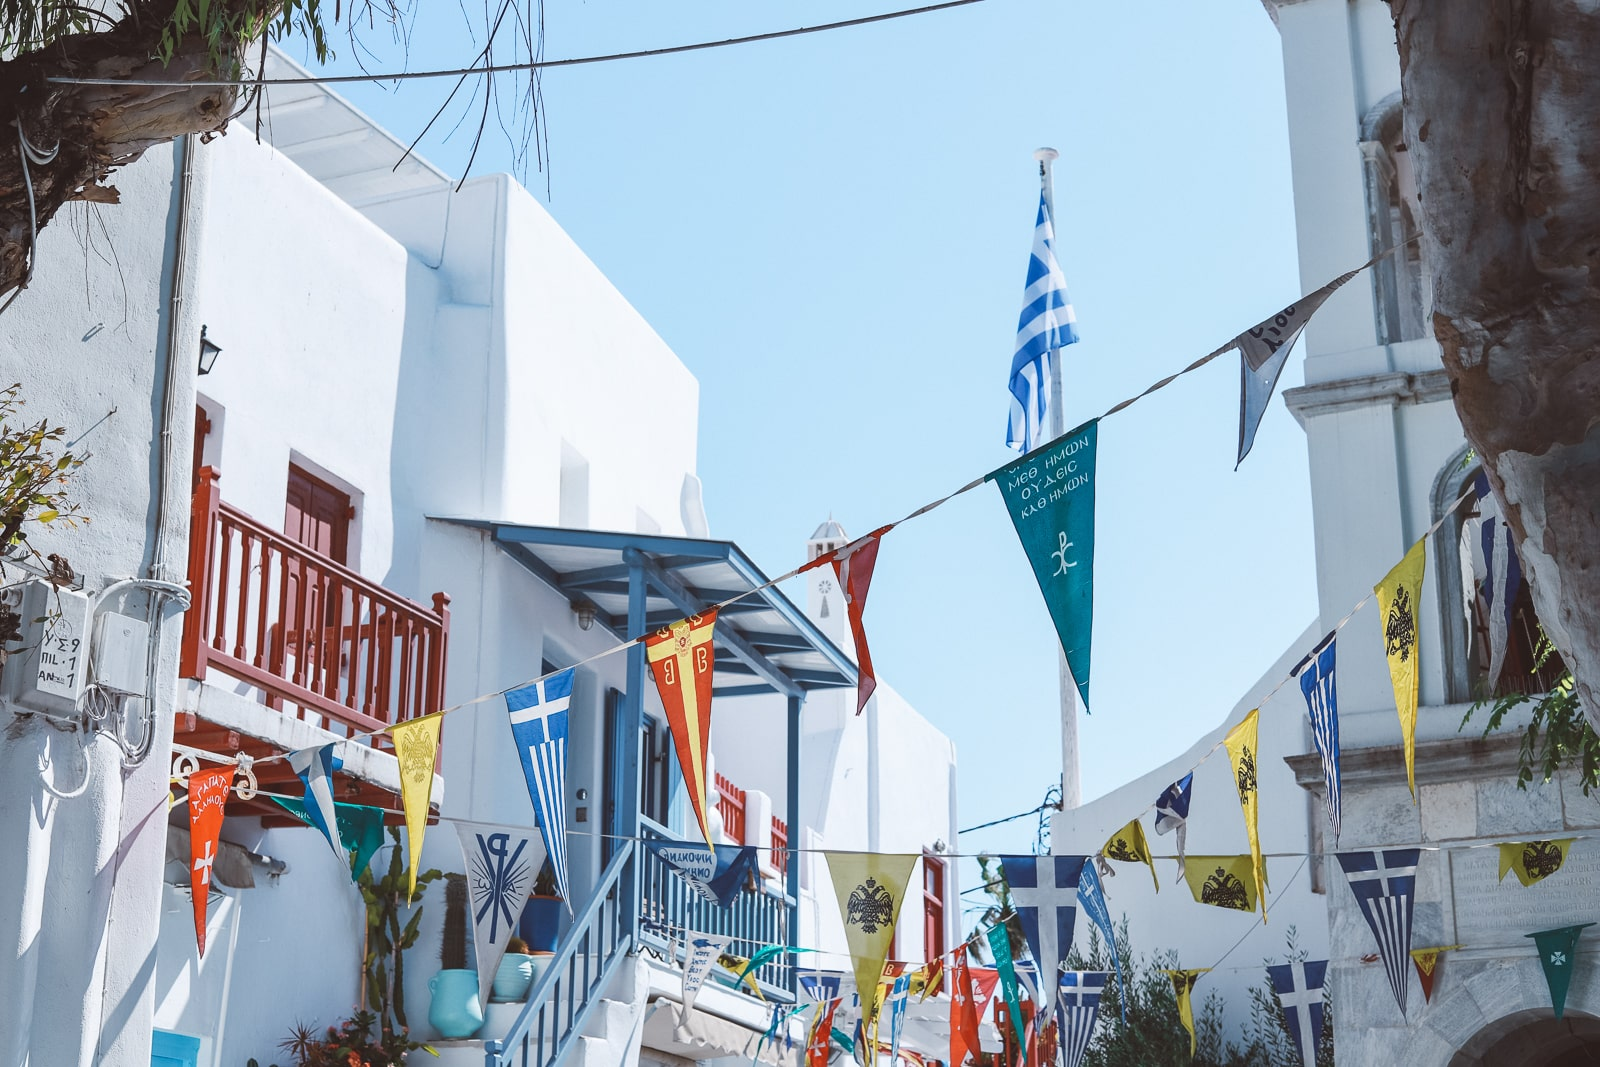 what's the best time to visit Greece? If you are wondering whether it's going to be too cold, hot, or busy for the dates you are thinking of visiting Greece, this article is for you!